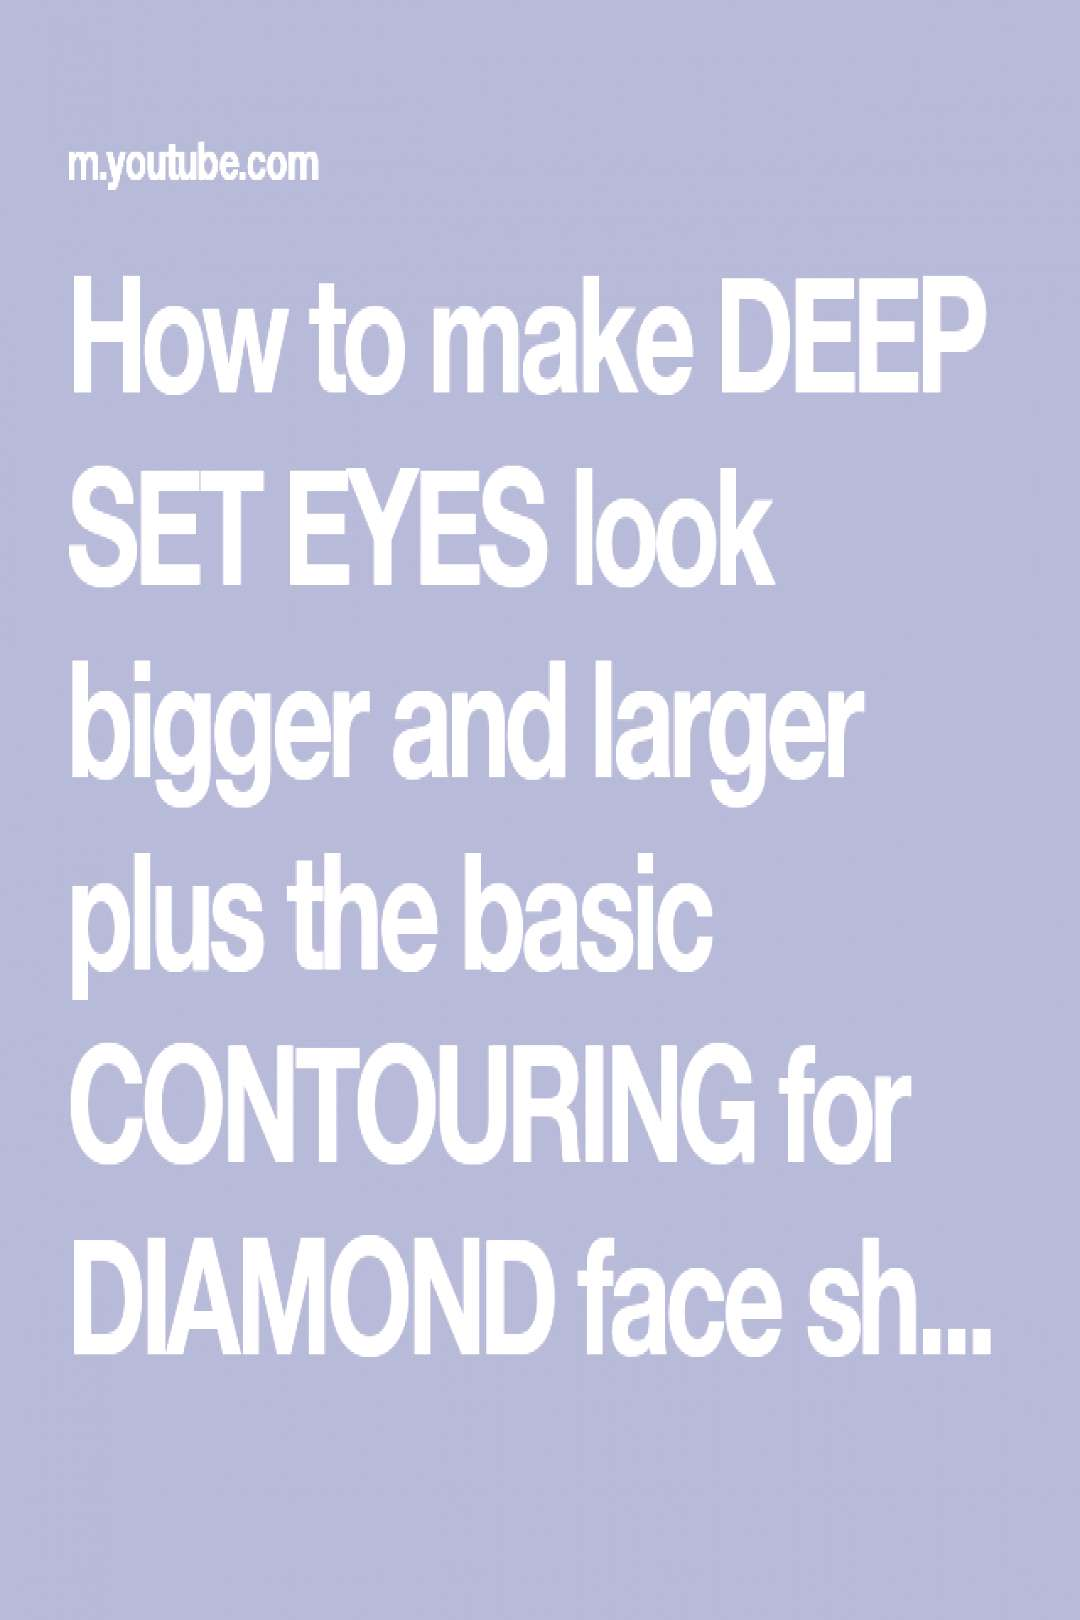 How to make DEEP SET EYES look bigger and larger plus the basic CONTOURING for DIAMOND face shape -